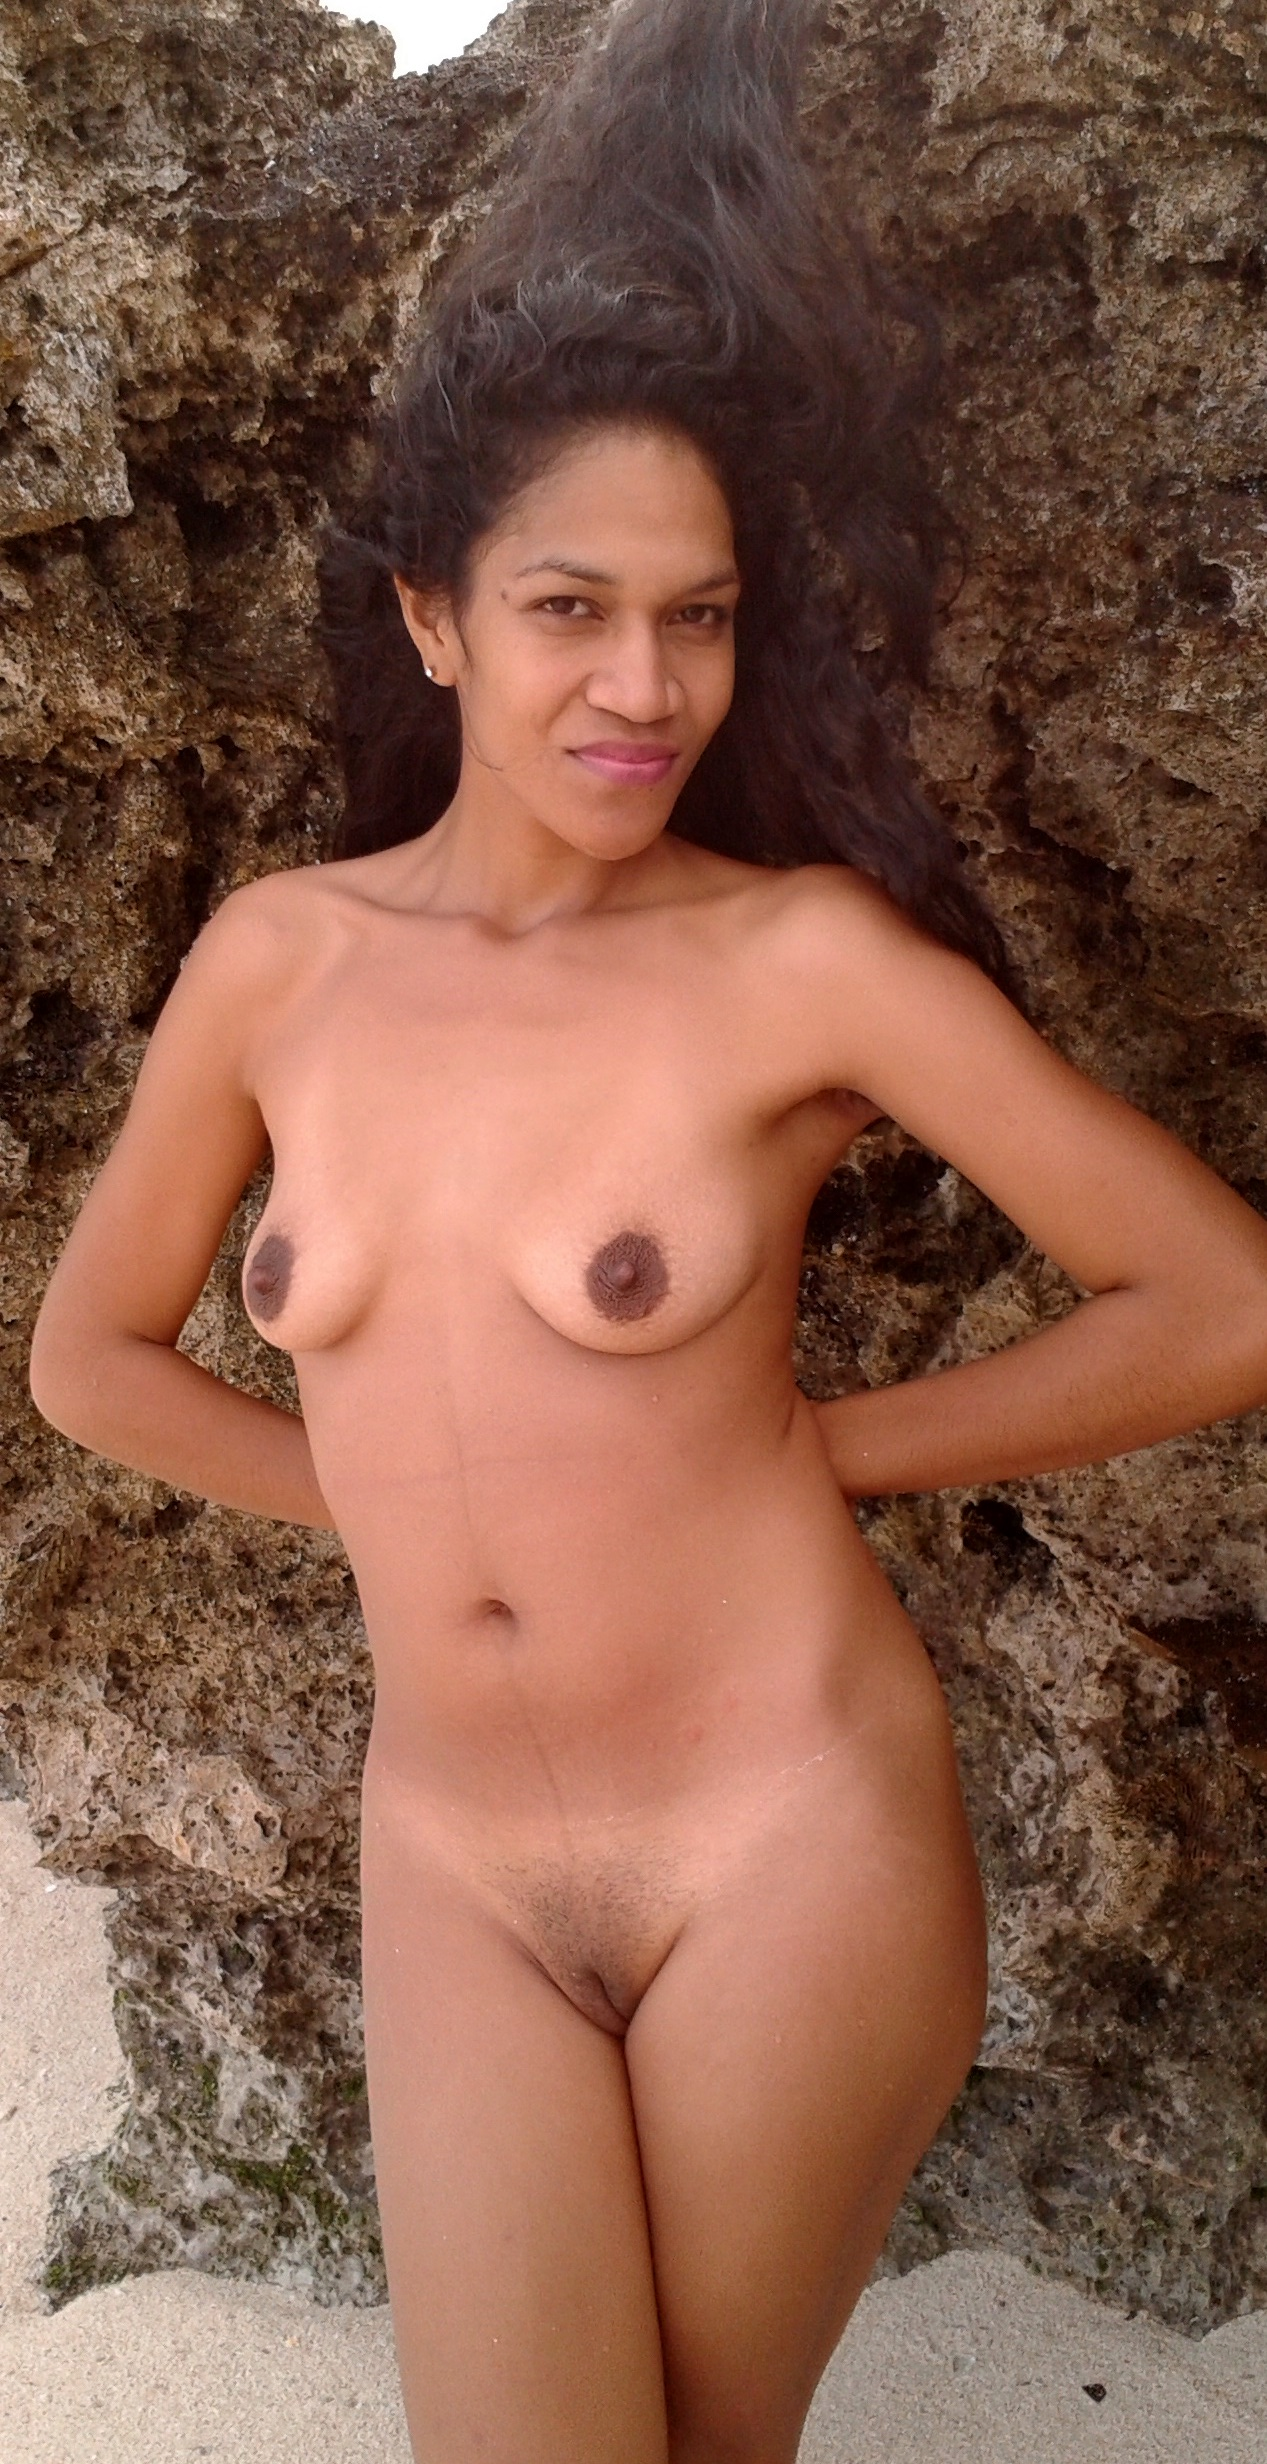 nude pacific islands ladies